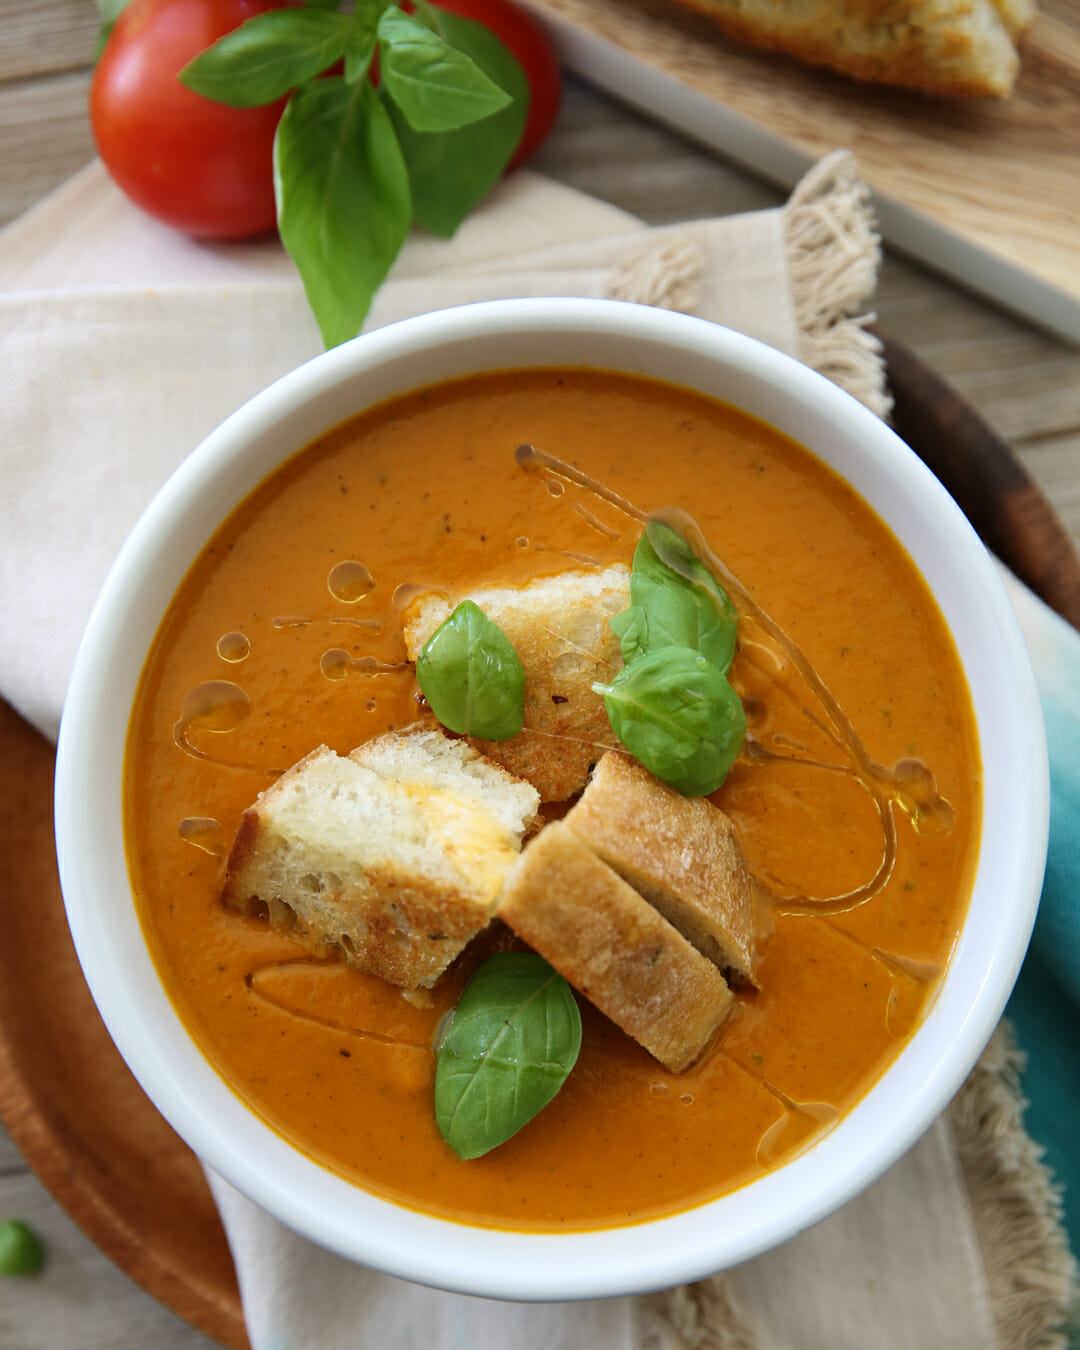 Pressure Cooker Tomato Soup Recipe with Croutons on Top